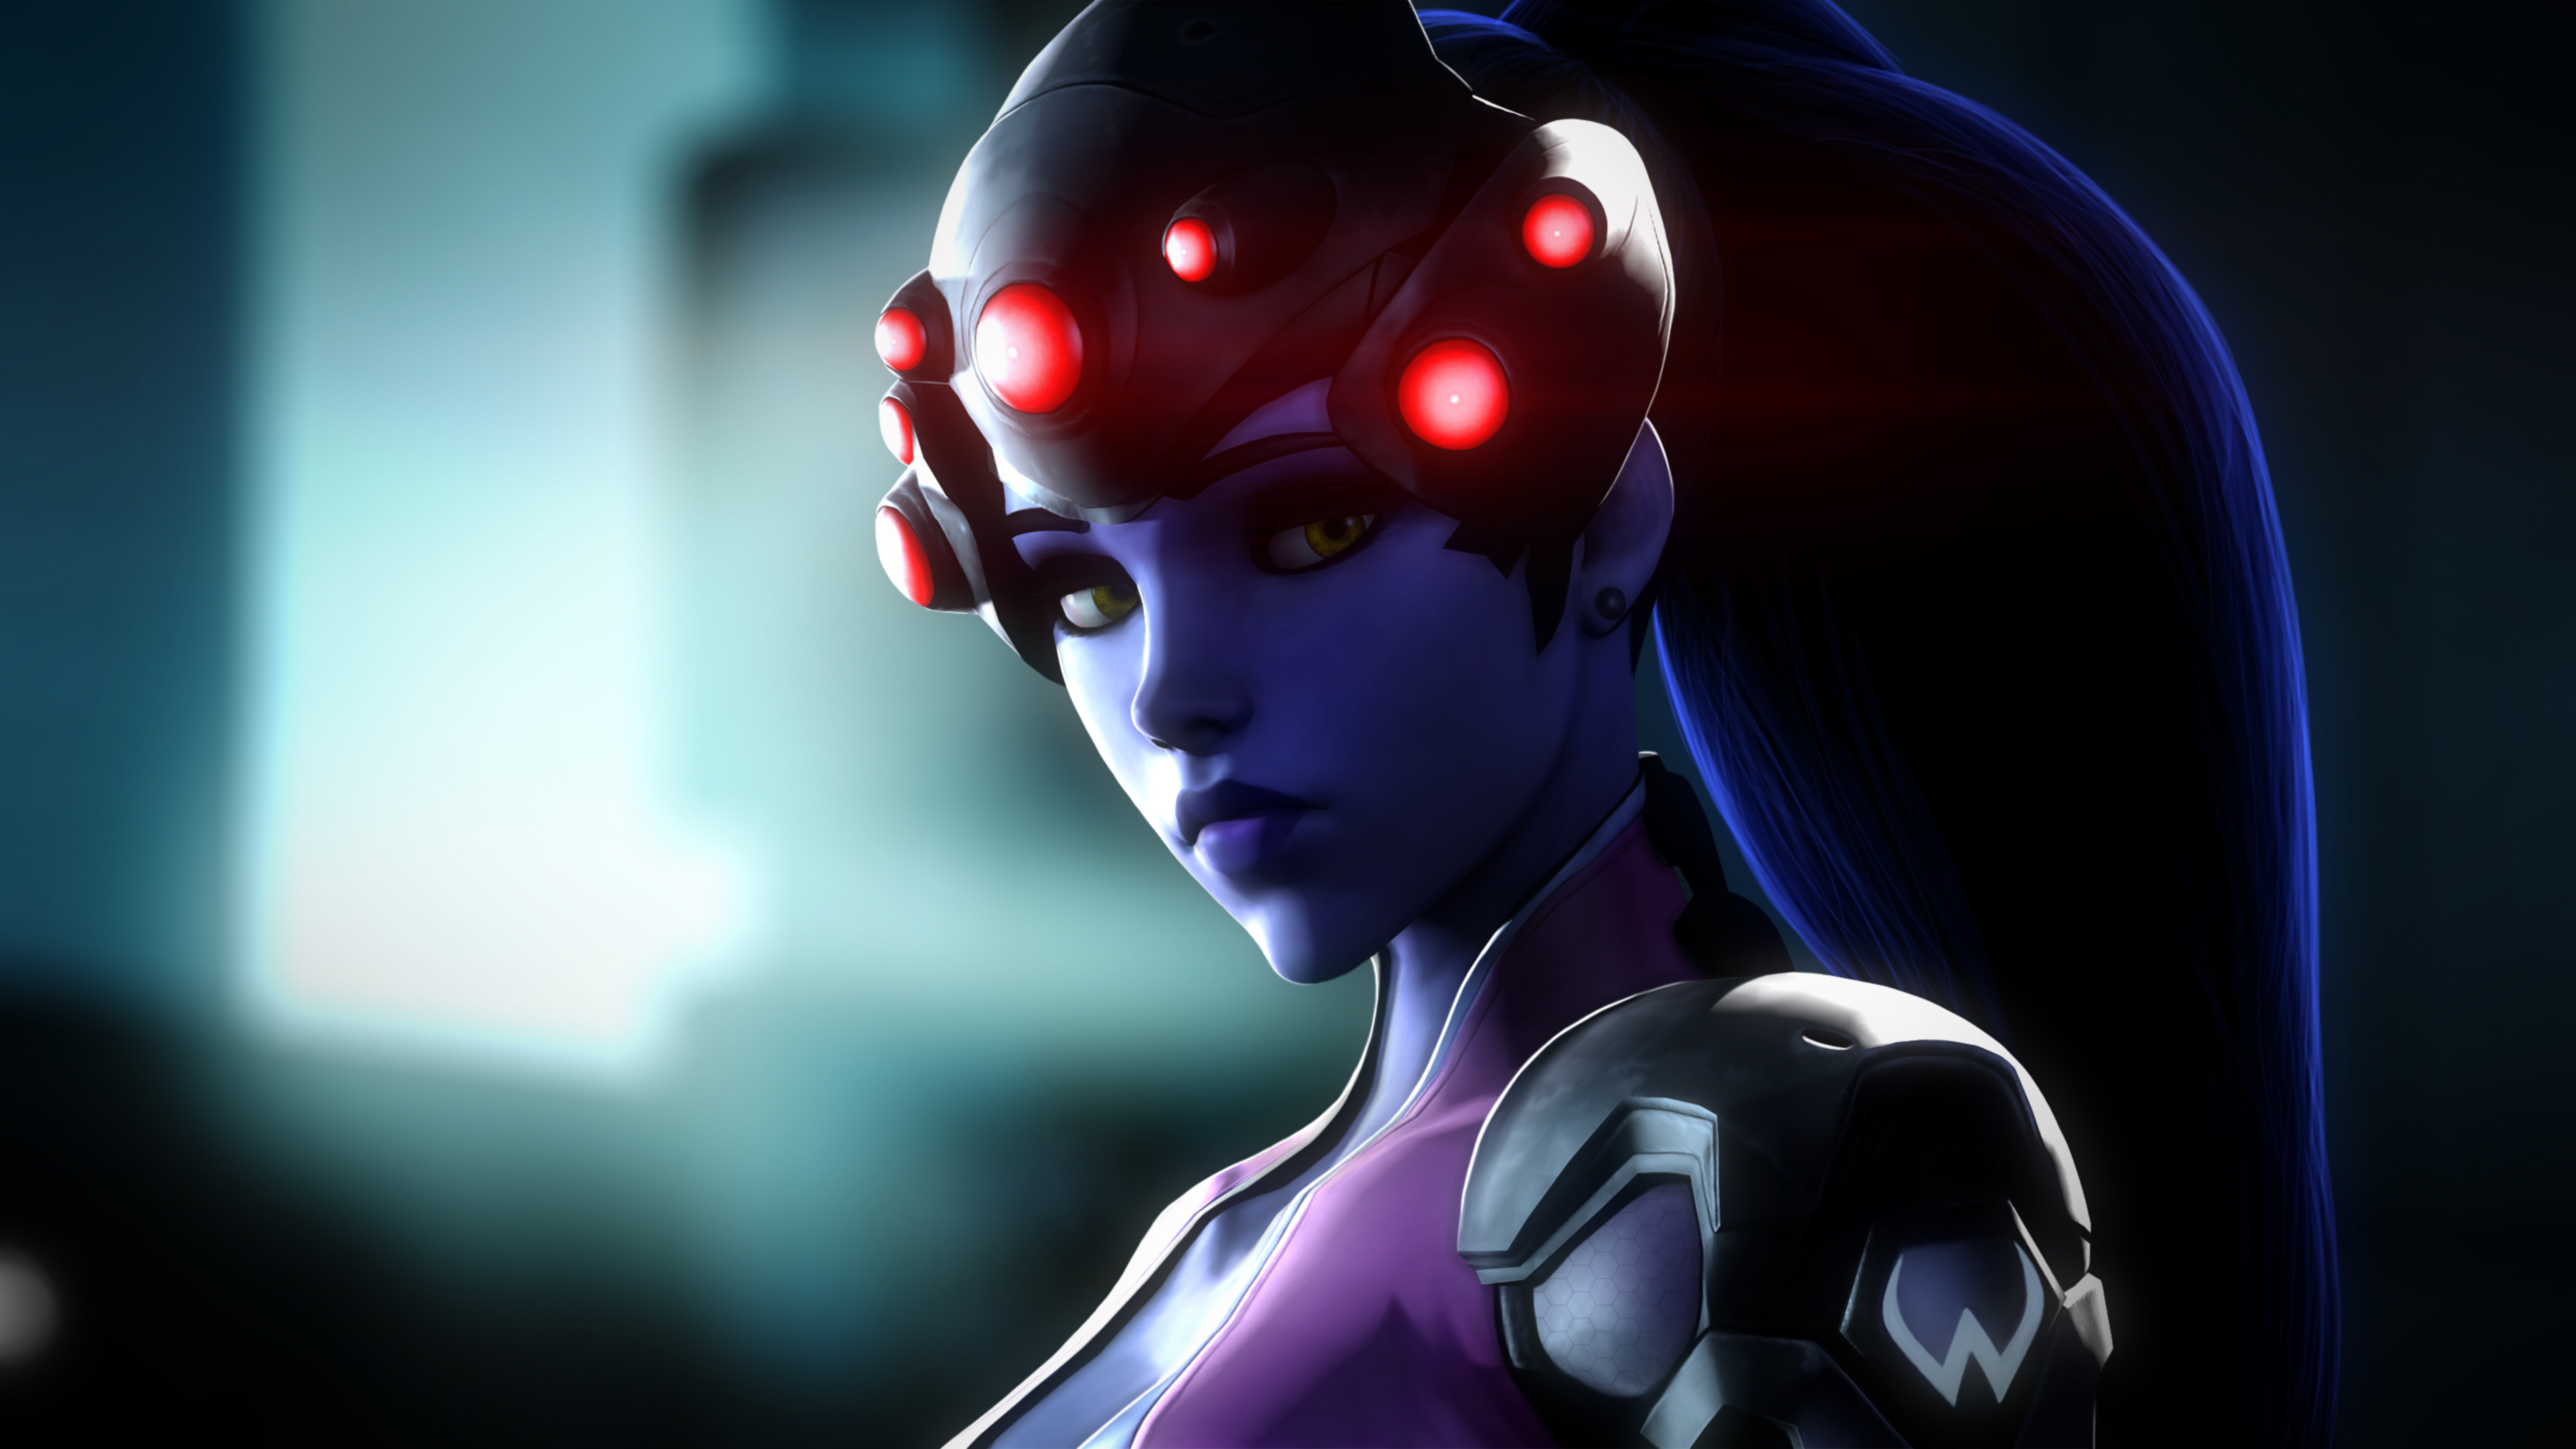 207 Widowmaker Overwatch Hd Wallpapers Background Images